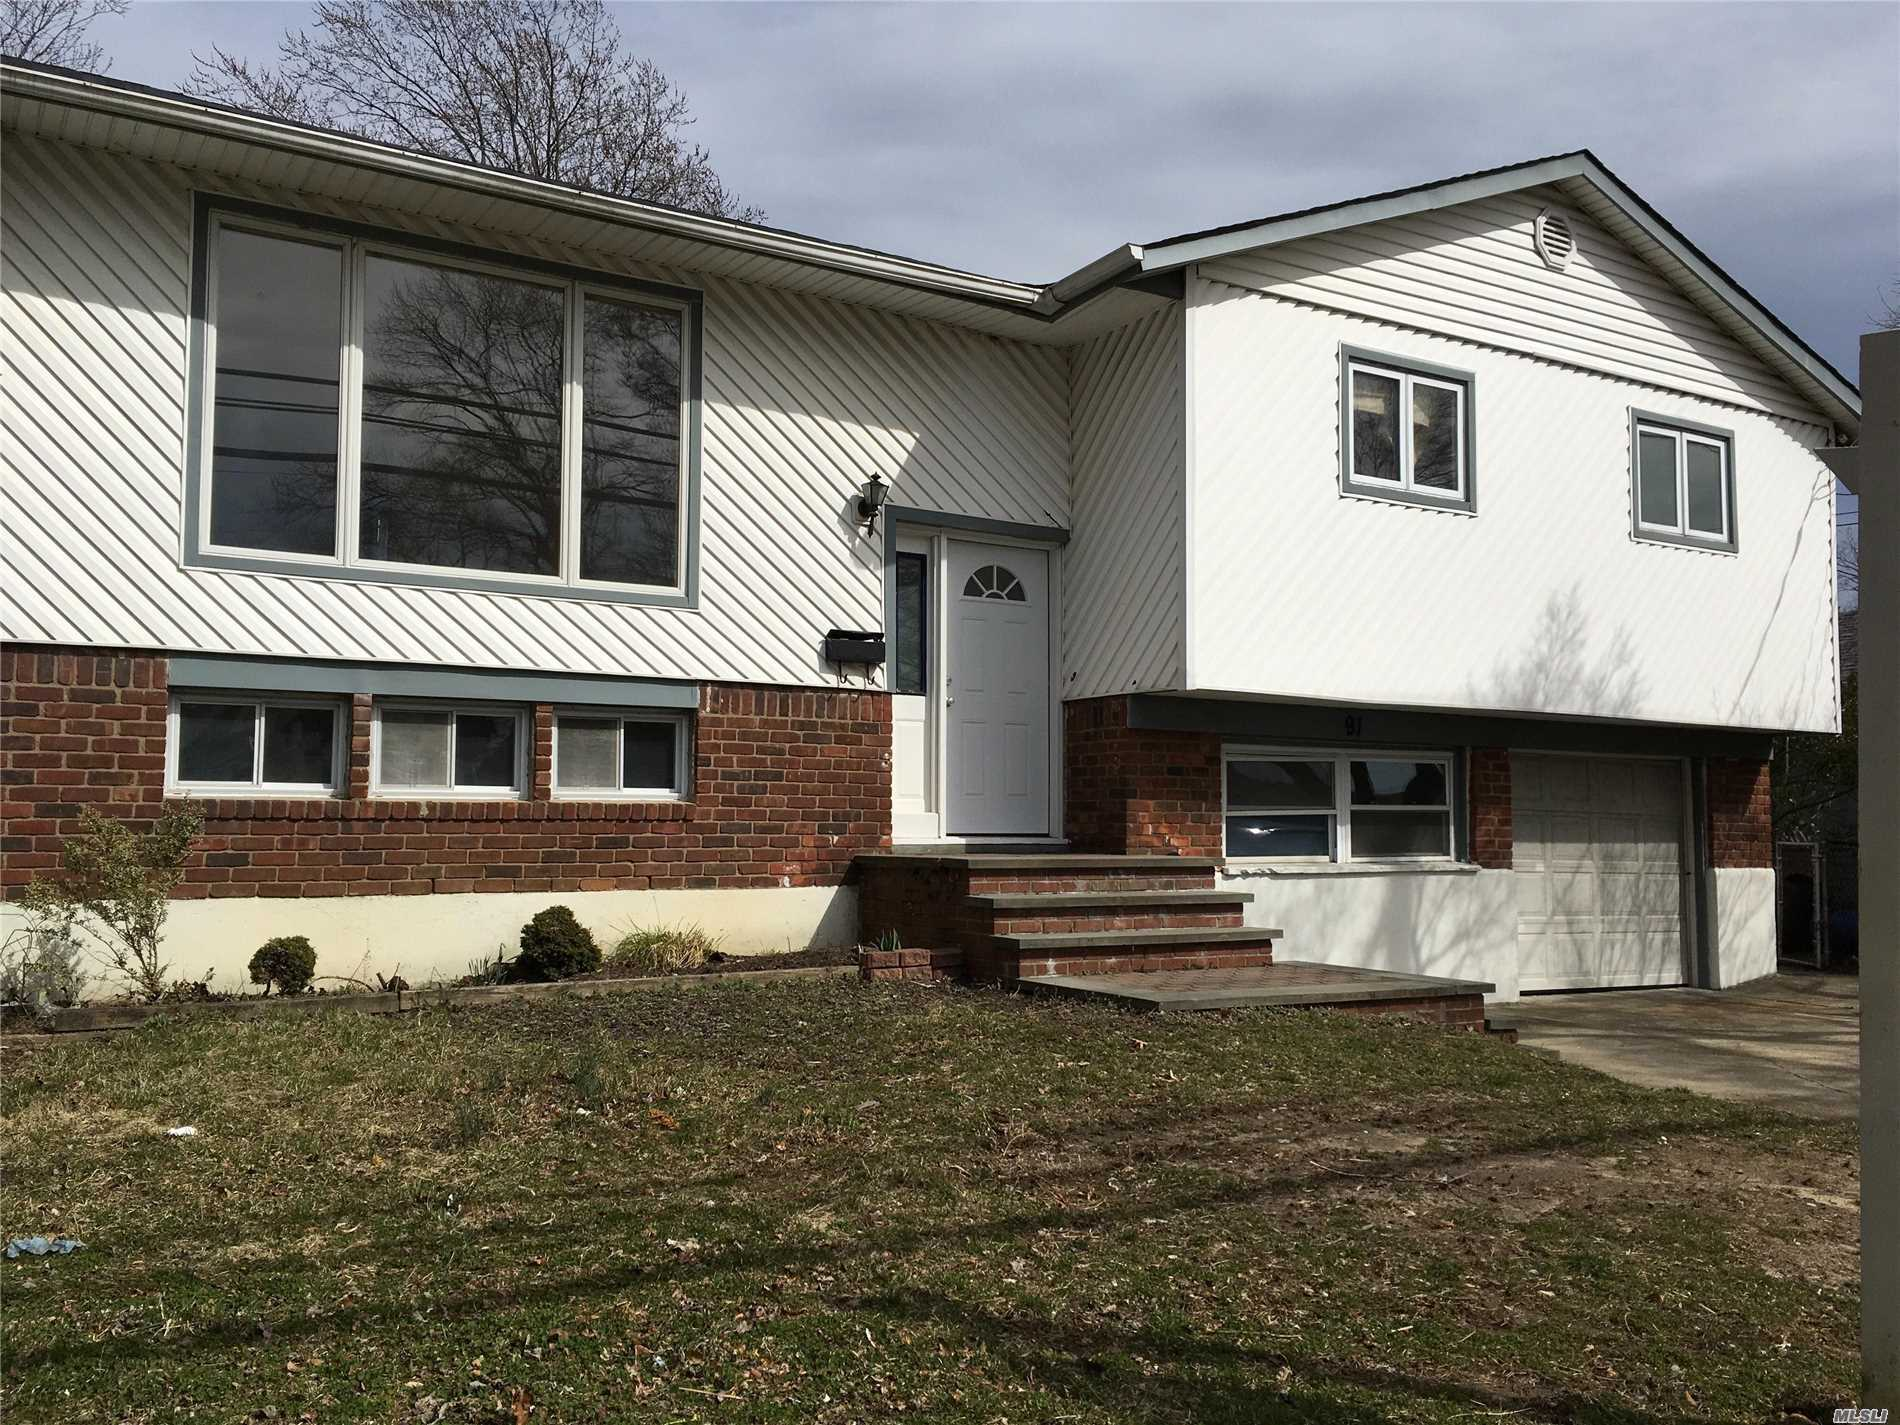 This newly renovated hi-ranch has 4 bds 2 ba, 2 new kitchens, new floors and new roof. It's easy to reach southern state parkway or sunrise hwy, walking distance to Westfield sunrise shopping mall, 1 hour to city ,  LIRR is a mile away, access from montauk to New York City, flood zone X. Property taxes grievance has been on process. Just add little final touch to make this large house into your sweet home. I know a private lender can provide 100% fund with 5% interest rate without credit check.